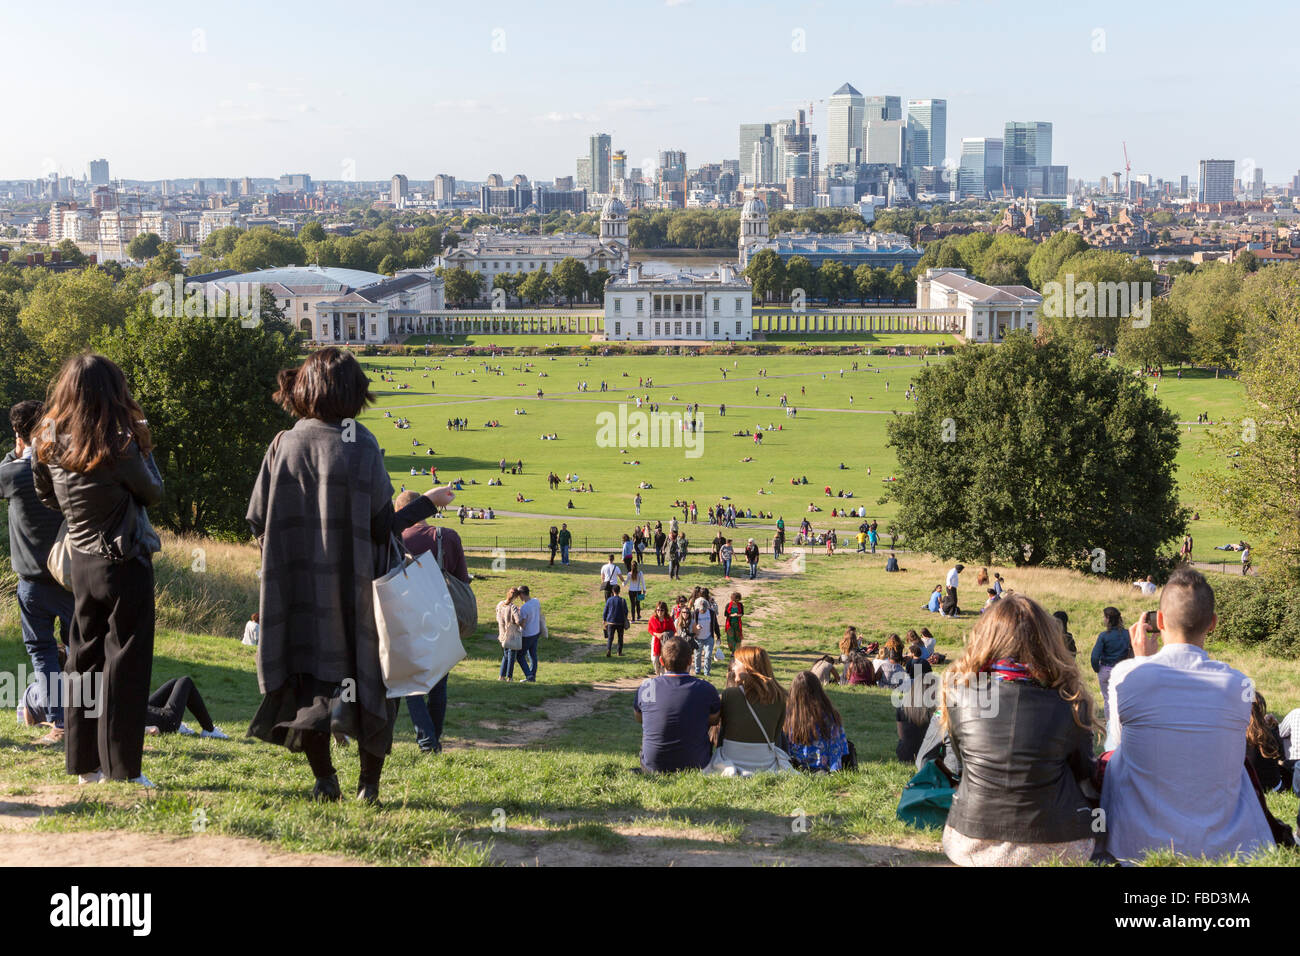 National Maritime Museum, Greenwich and Canary Wharf office complex, London, United Kingdom - Stock Image